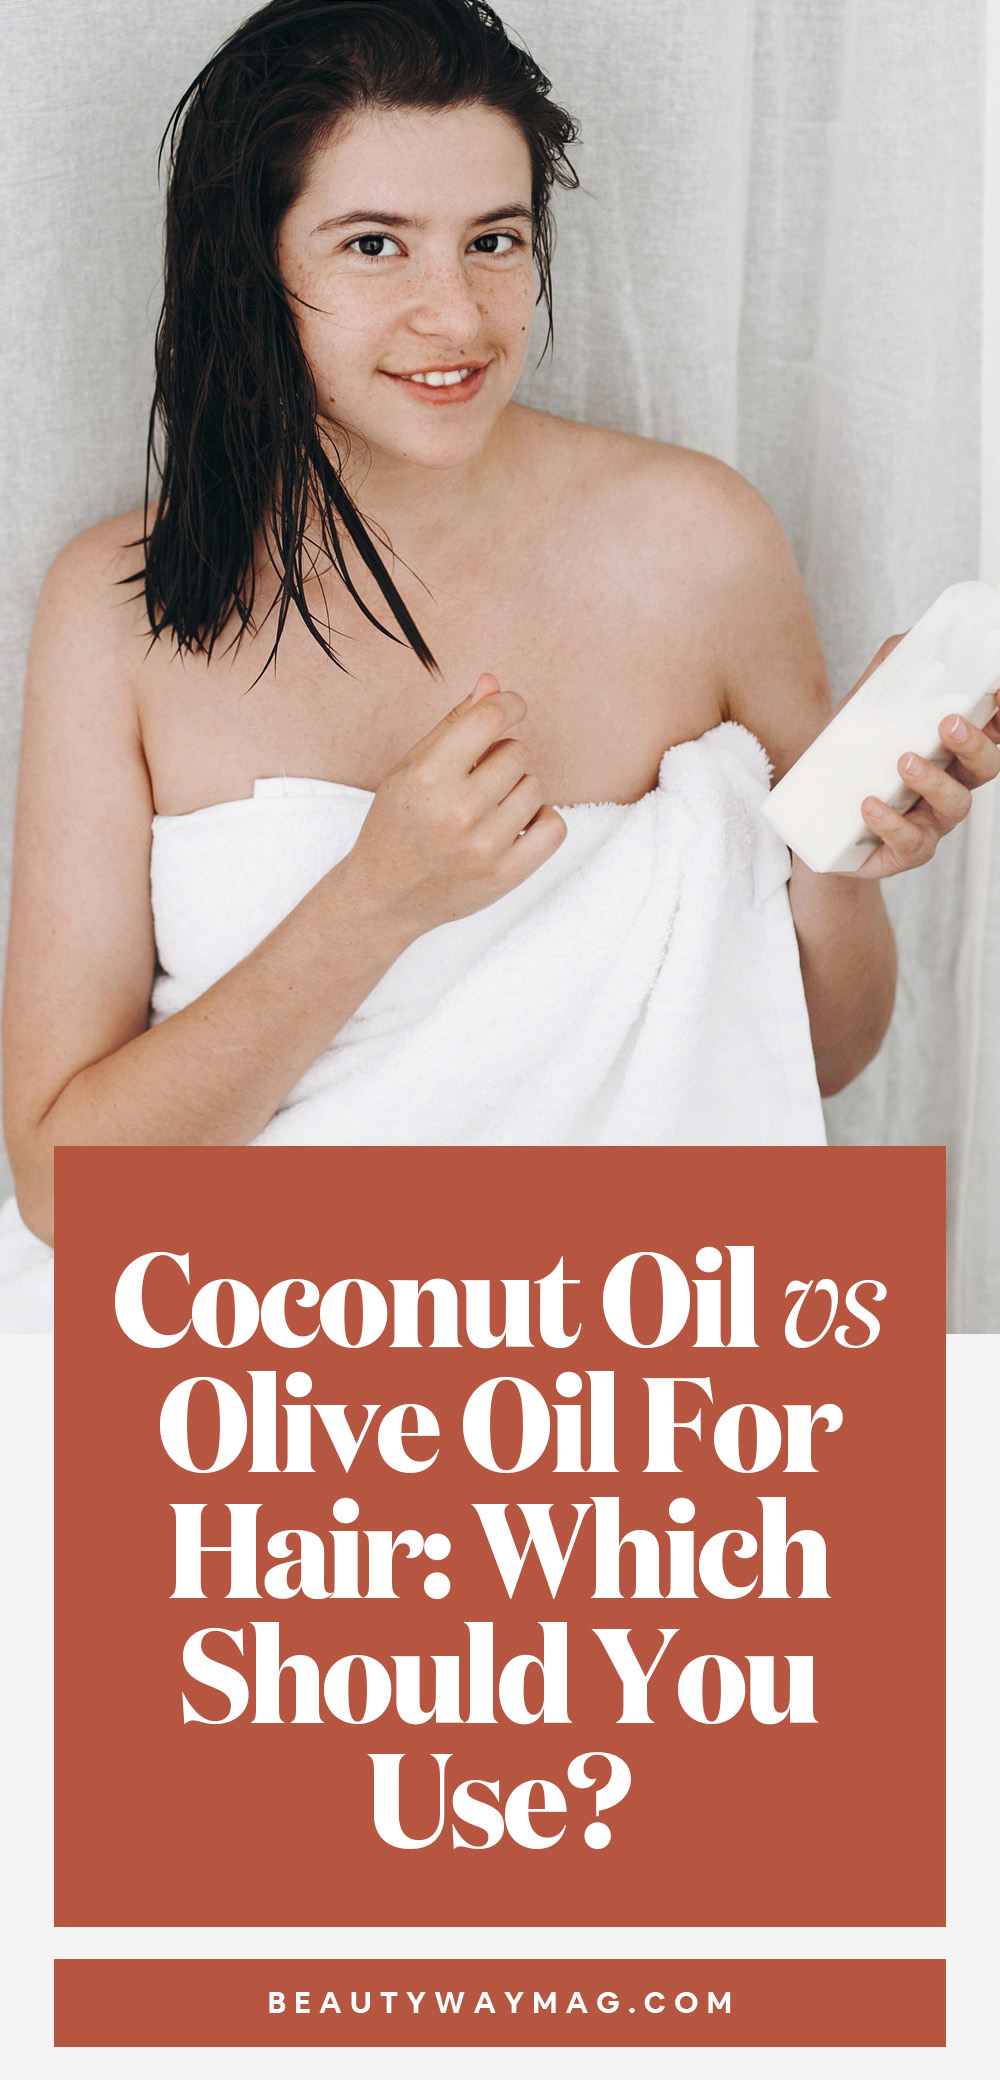 Coconut Oil Vs Olive Oil For Hair: Which Should You Use?